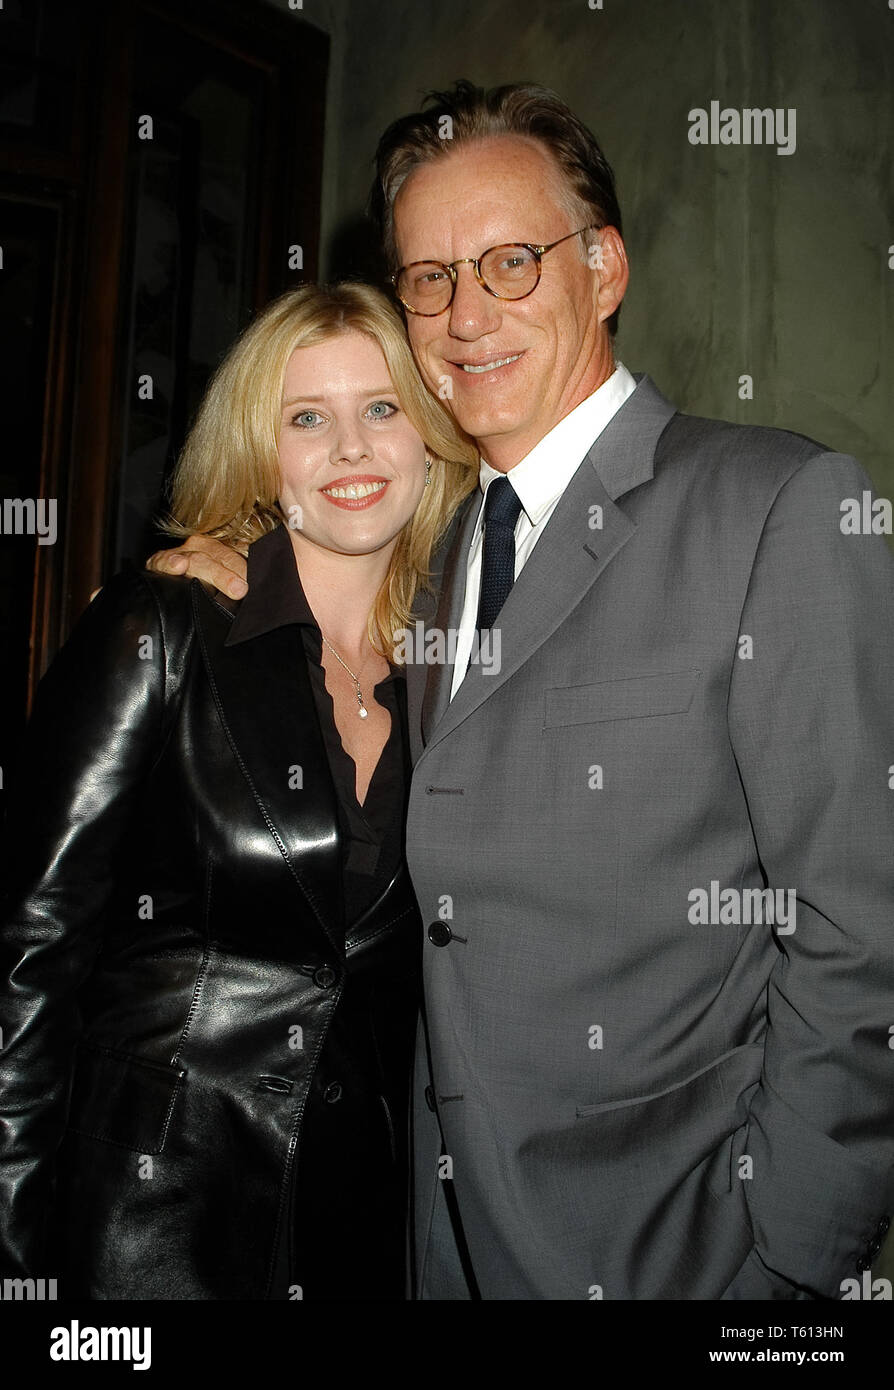 James Woods & Dawn DeNoon at the Academy of Television Arts & Sciences dinner honoring the 55th Annual Primetime Emmy Awards Nominees for Outstanding Performing Talent at Spagos in Beverly Hills, CA. The event took place on Thursday, September 18, 2003. Photo by: SBM / PictureLux  File Reference # 33790_2423SBMPLX - Stock Image